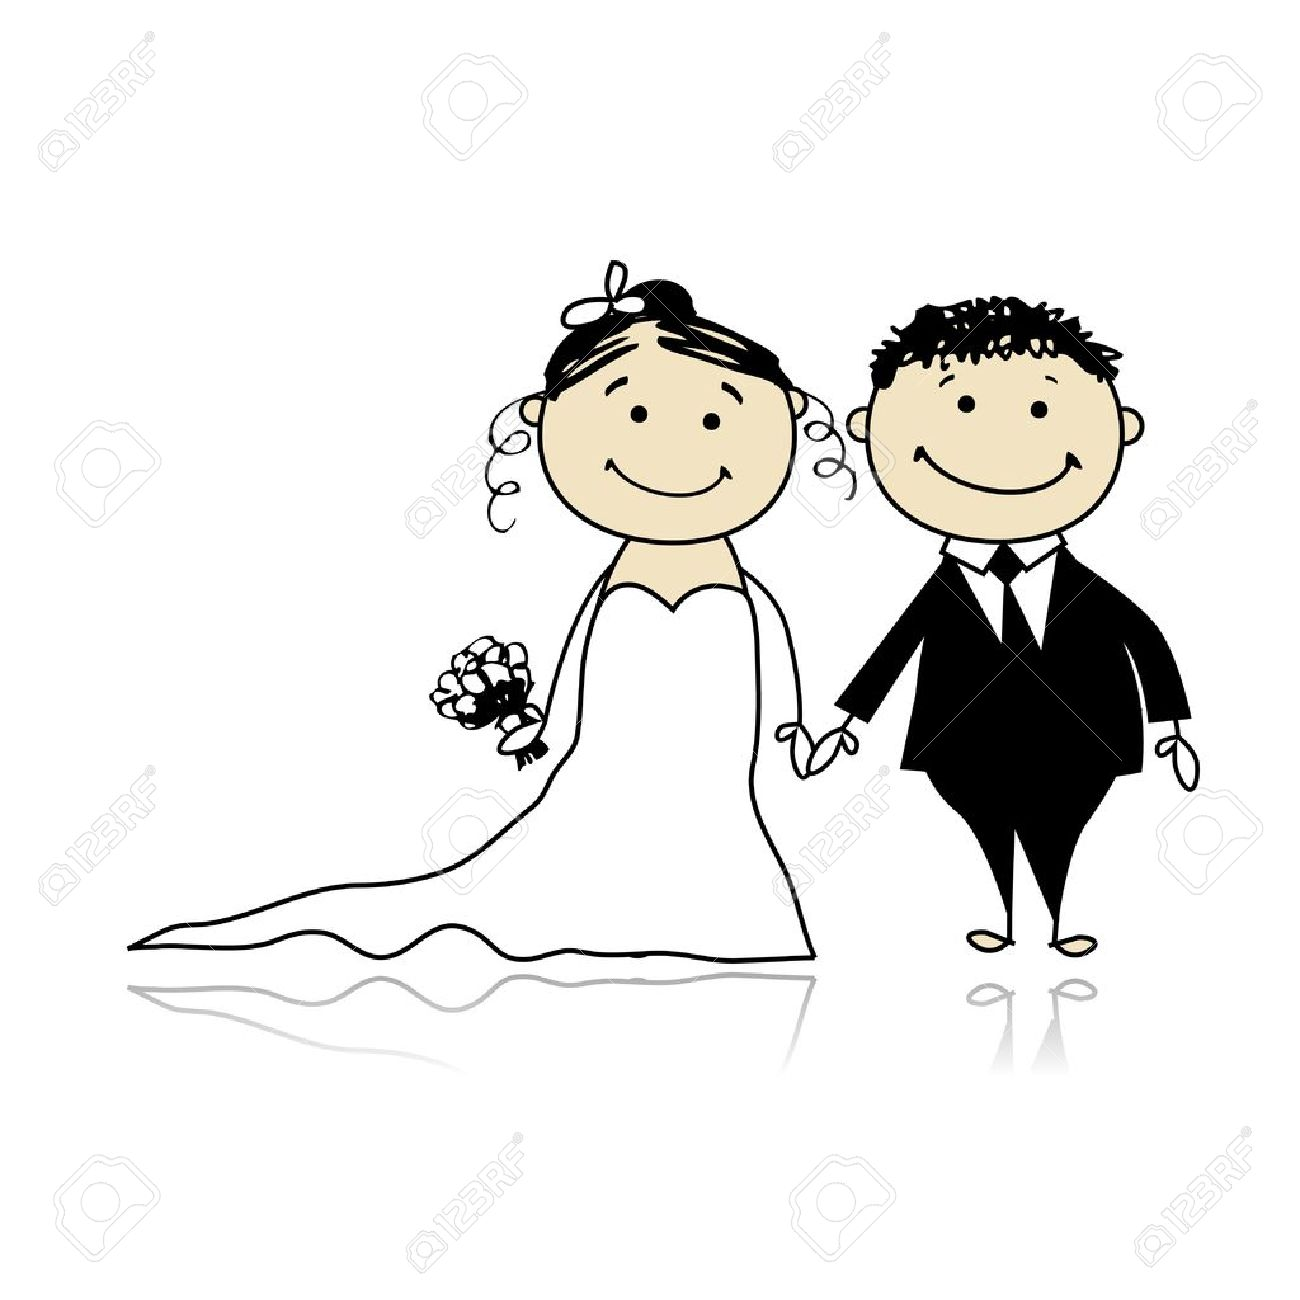 Wedding ceremony - bride and groom together for your design Stock Vector - 8362461